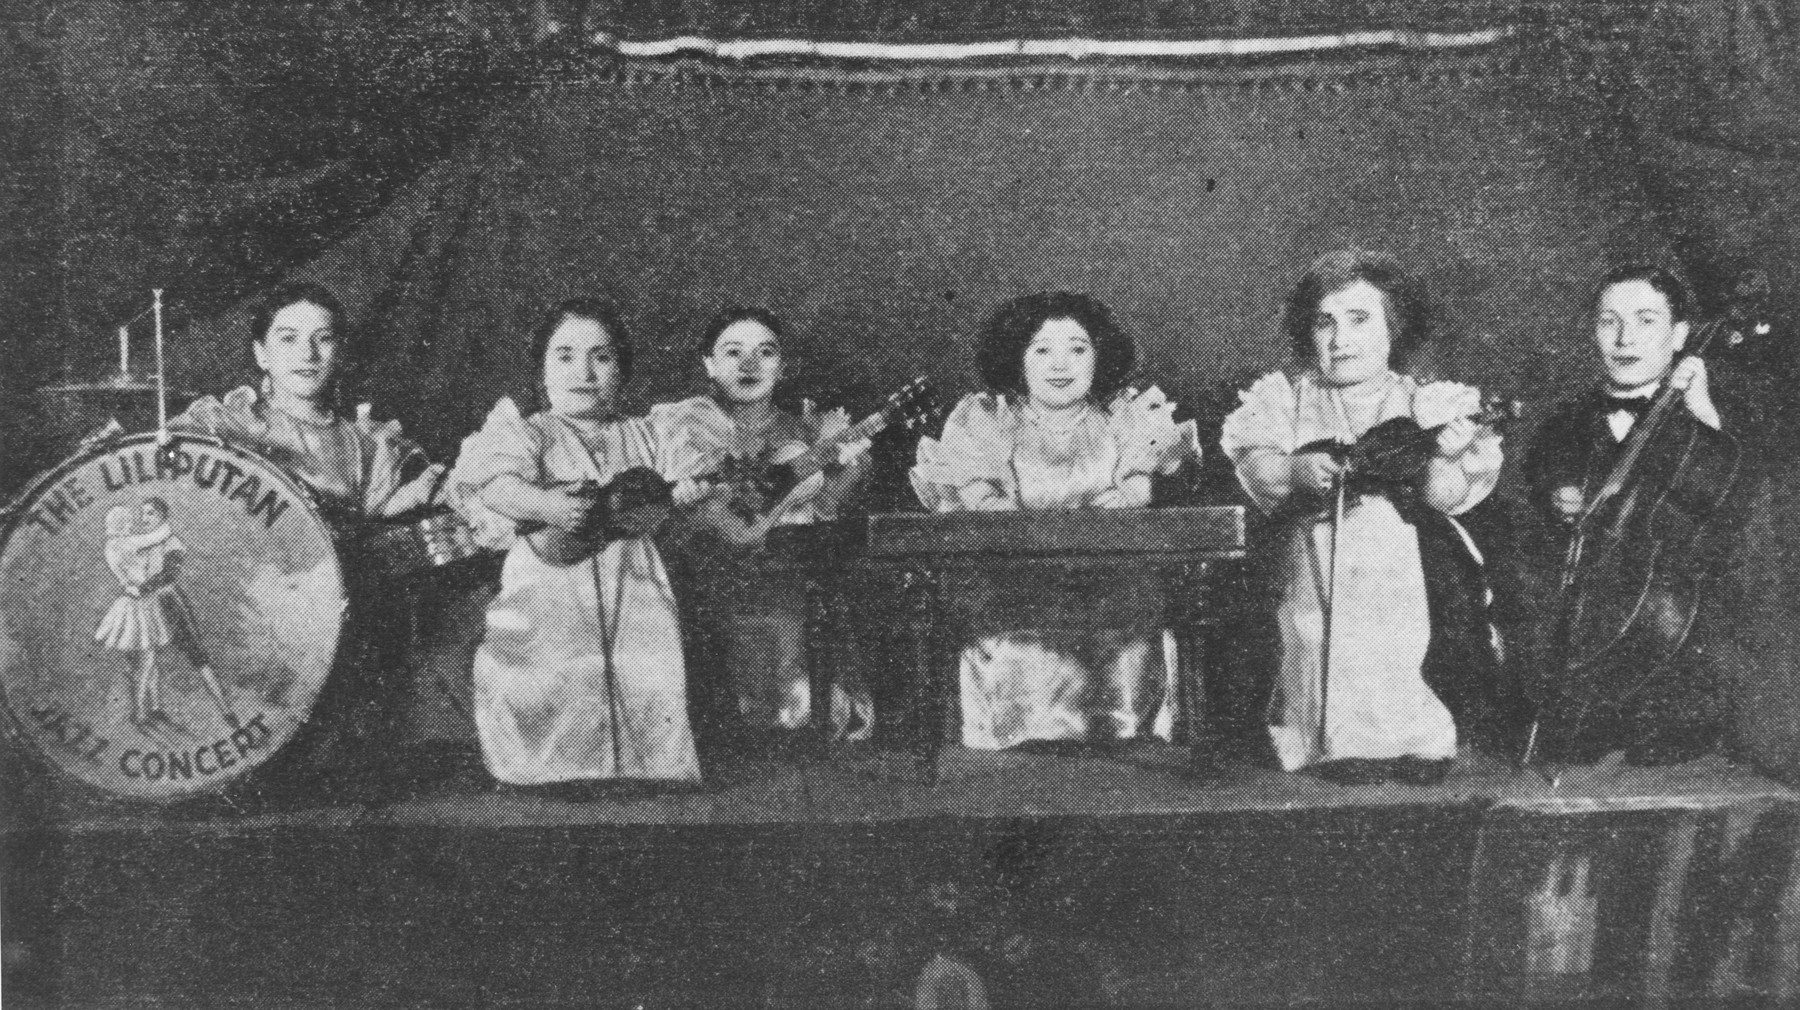 Group portrait of the Ovici family, a family of Jewish dwarf entertainers who survived Auschwitz, in a performance of the Liliputan Jazz Concert.